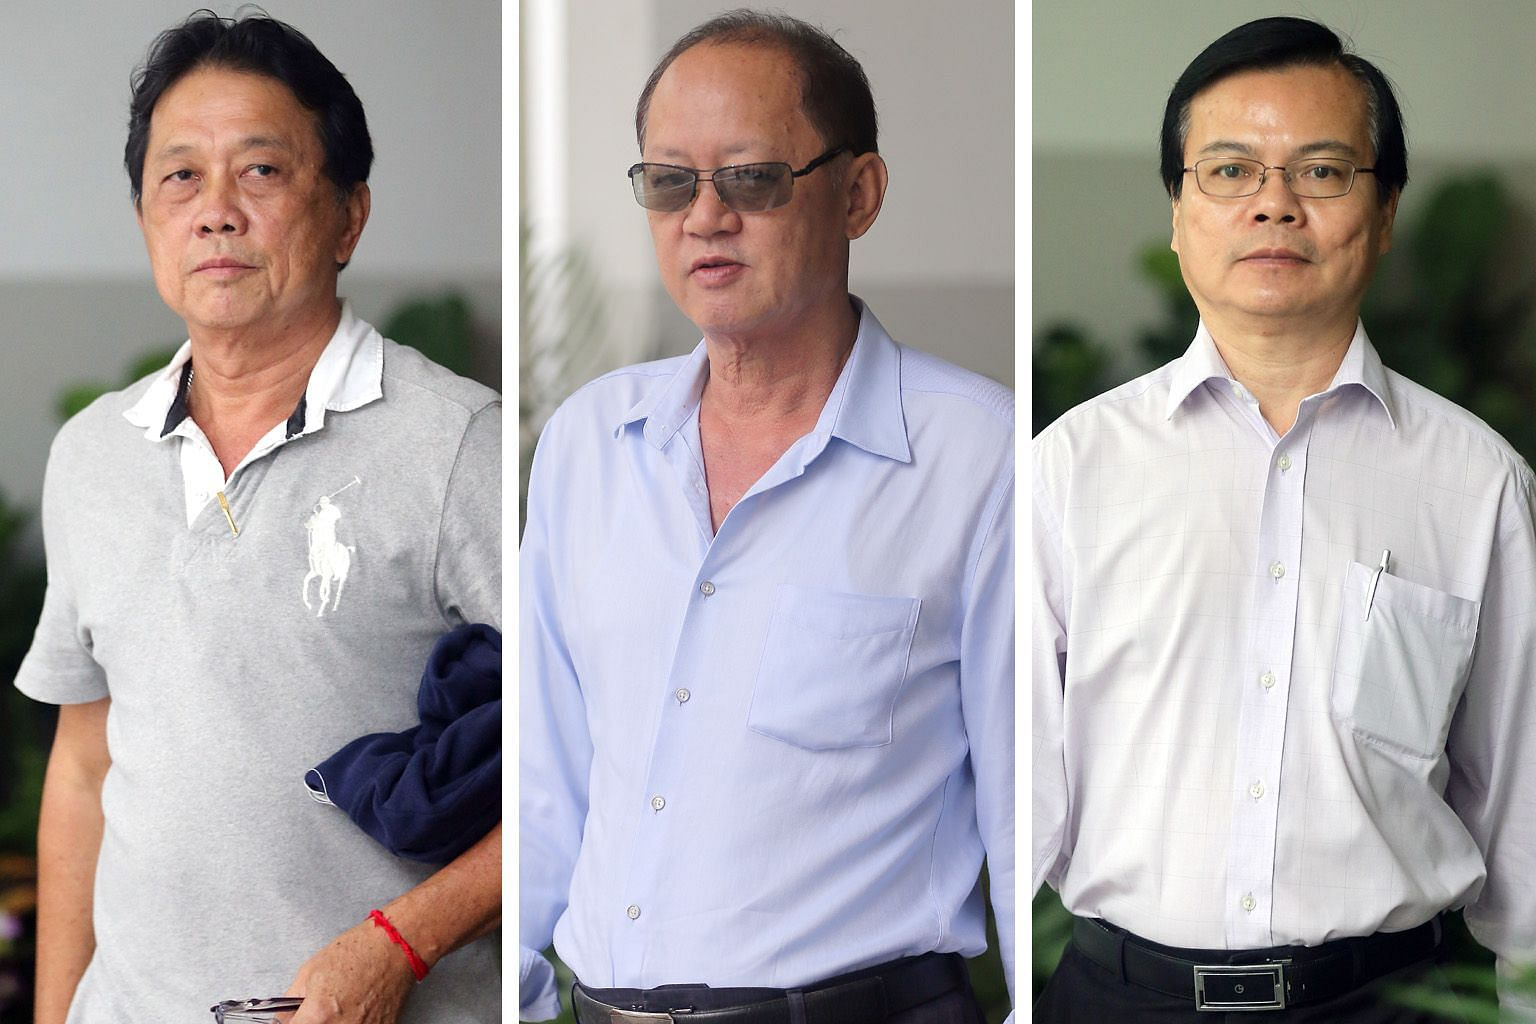 Prosecution witness, Mr Tay En Chuan (left), said company director Chia Sin Lan (centre) told him he sold a company car to former town council general manager Wong Chee Meng (right) at a discount.